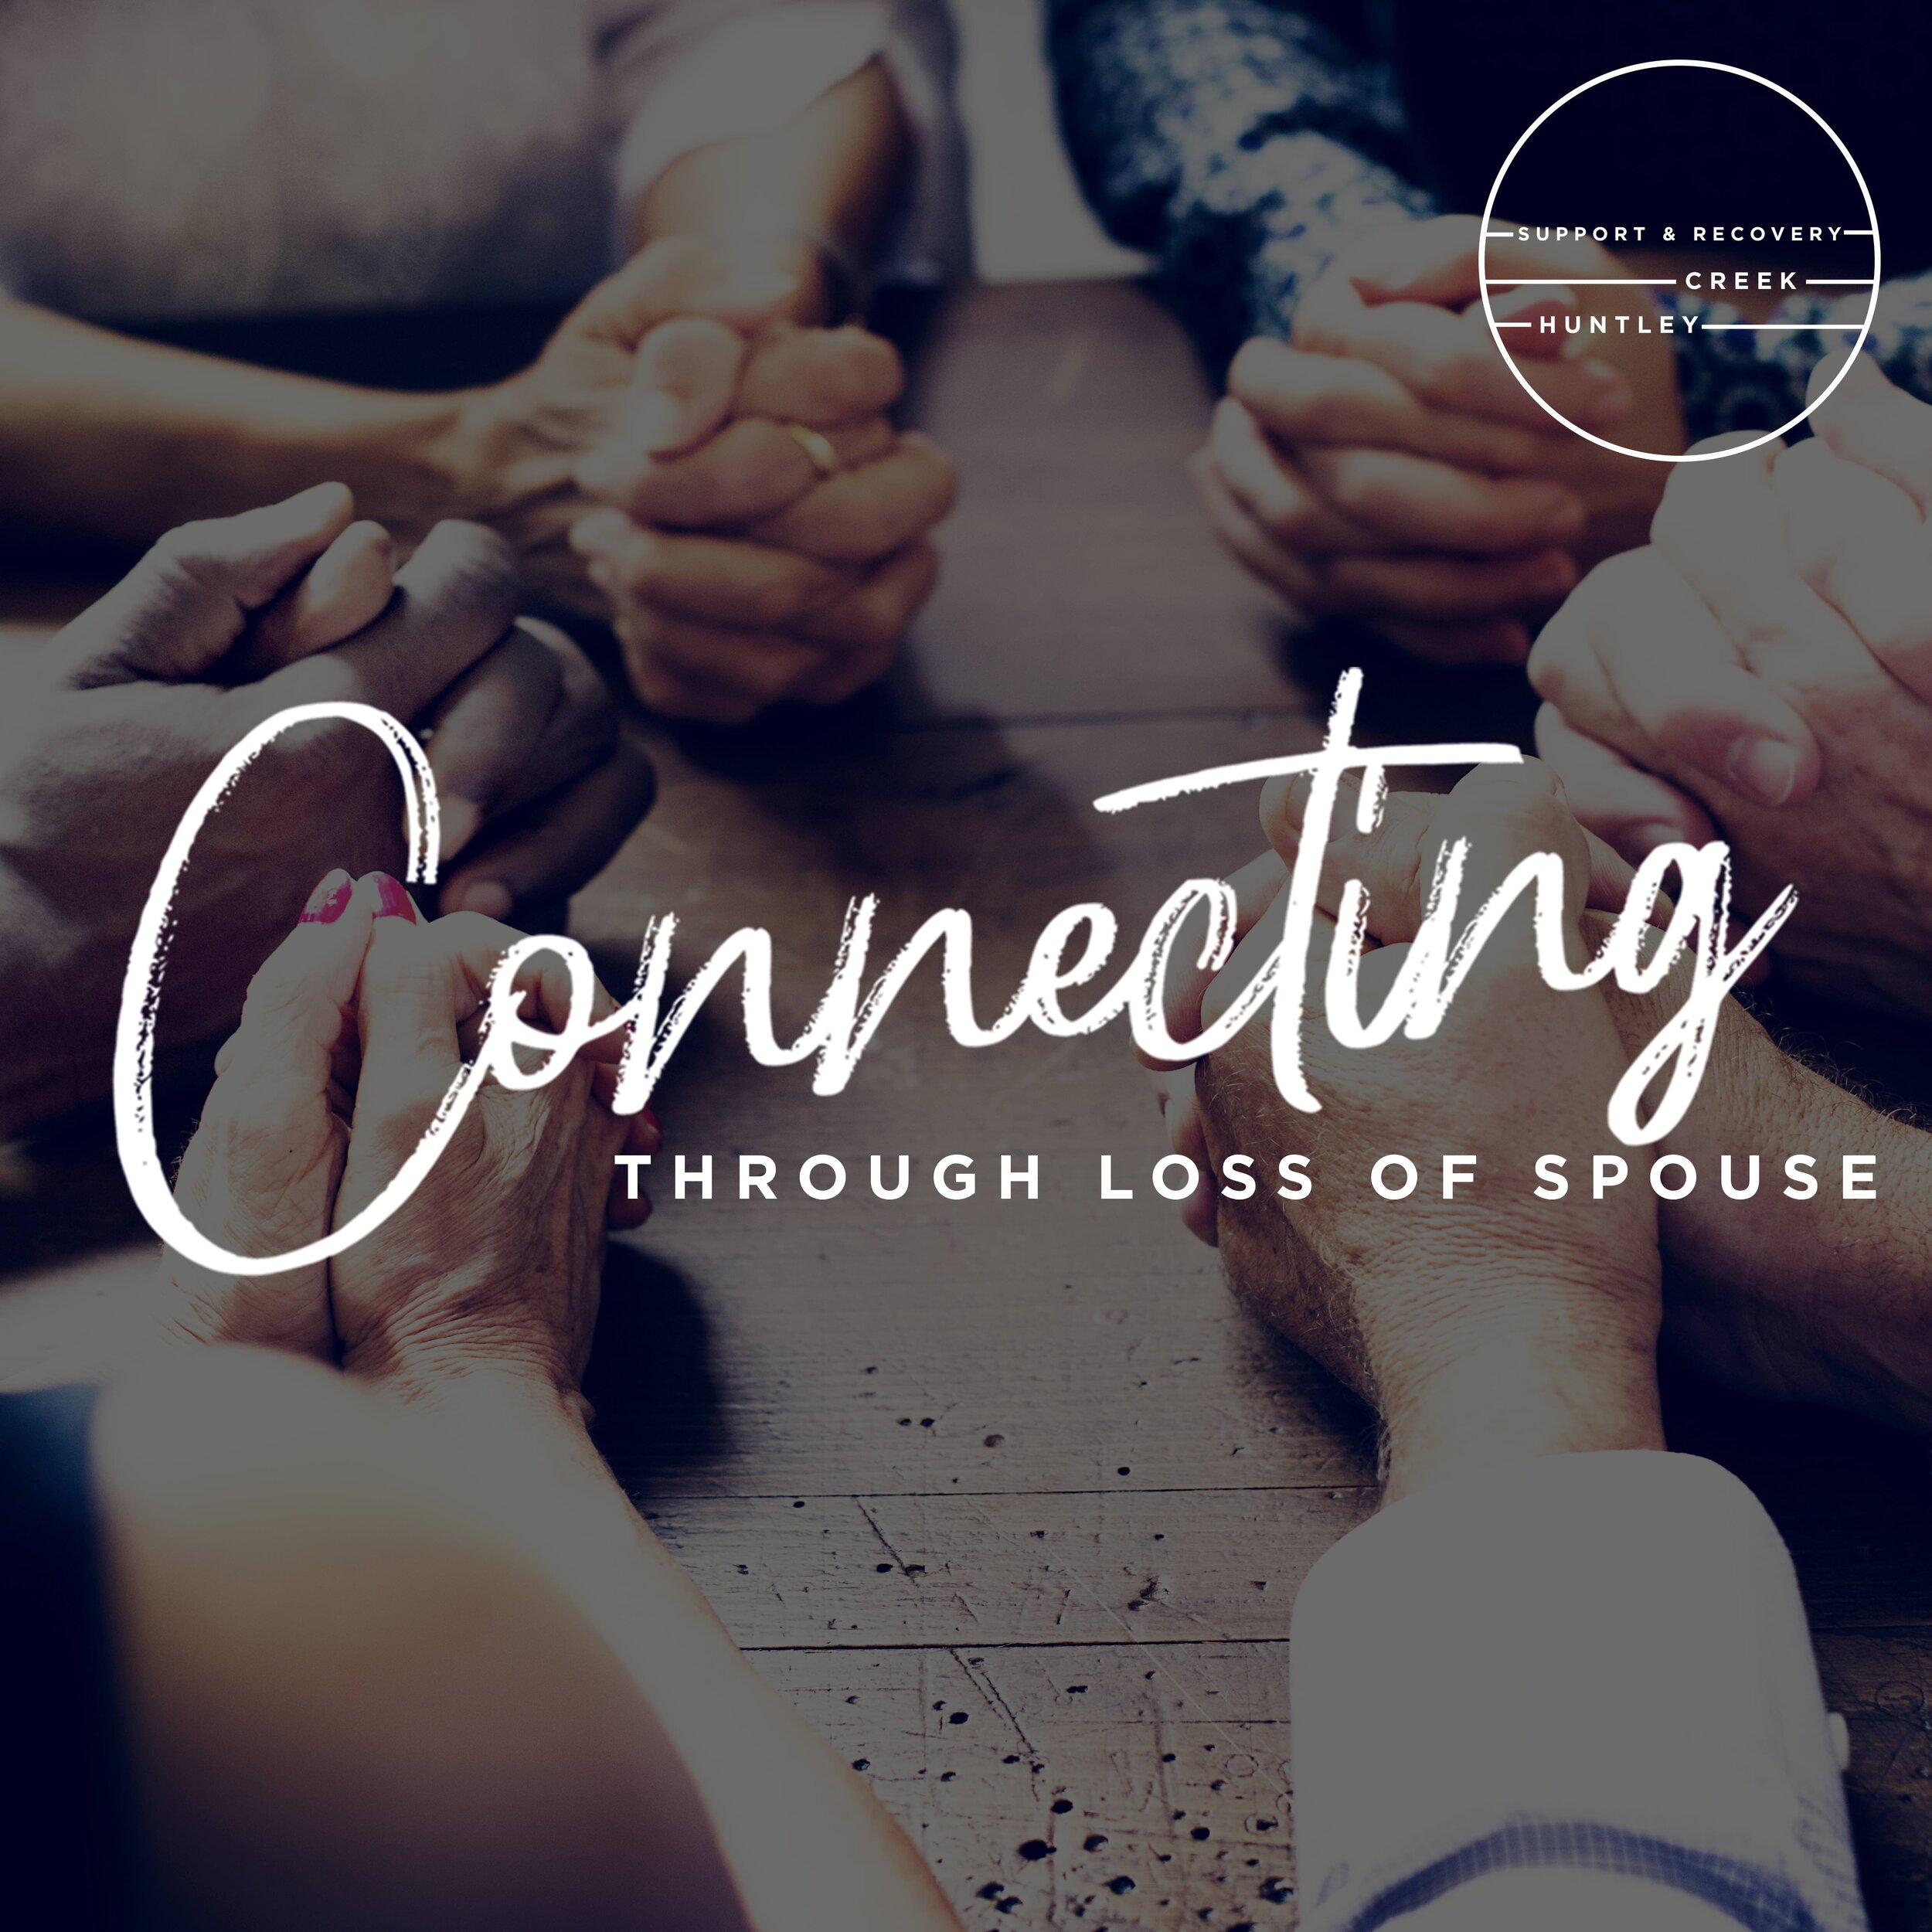 CONNECTING THROUGH LOSS OF SPOUSE - Connect, listen, encourage, and grow in community with others who have lost a spouse. This group meets casually once a month at various locations.Email Mandy at mschneider@willowcreek.org for more information.Upcoming:Sunday | Sept. 22 | 10:15am - 11am | Atrium Reserved TableSunday | Oct. 20 | 4pm | Connecting Through Loss of Spouse: Fall Potluck| Private home in Lake in the Hills | Contact Mandy for address and additional information at mschneider@willowcreek.org